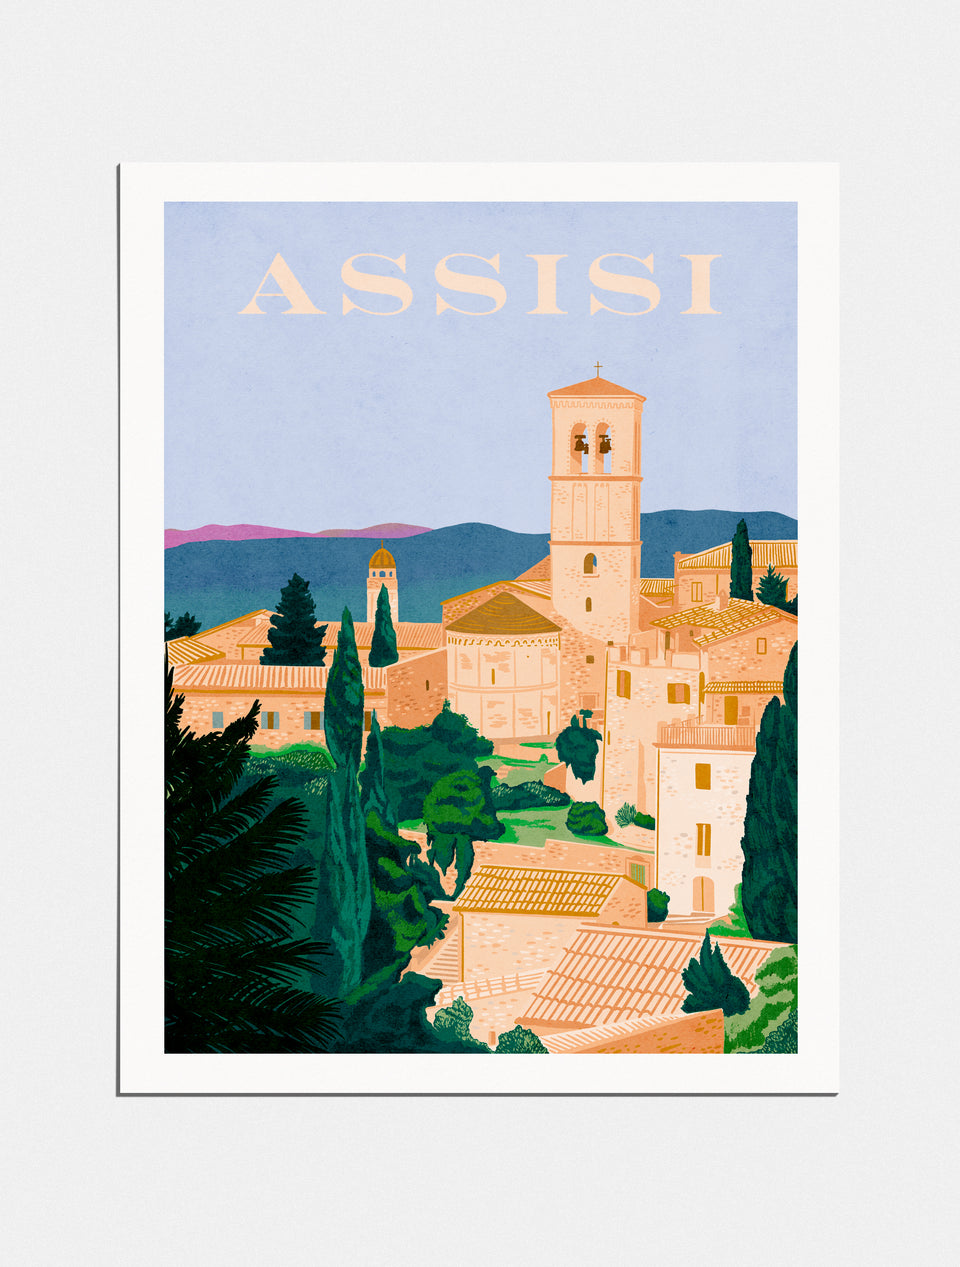 Premium Poster: Pilgrimage to Assisi, 18x24